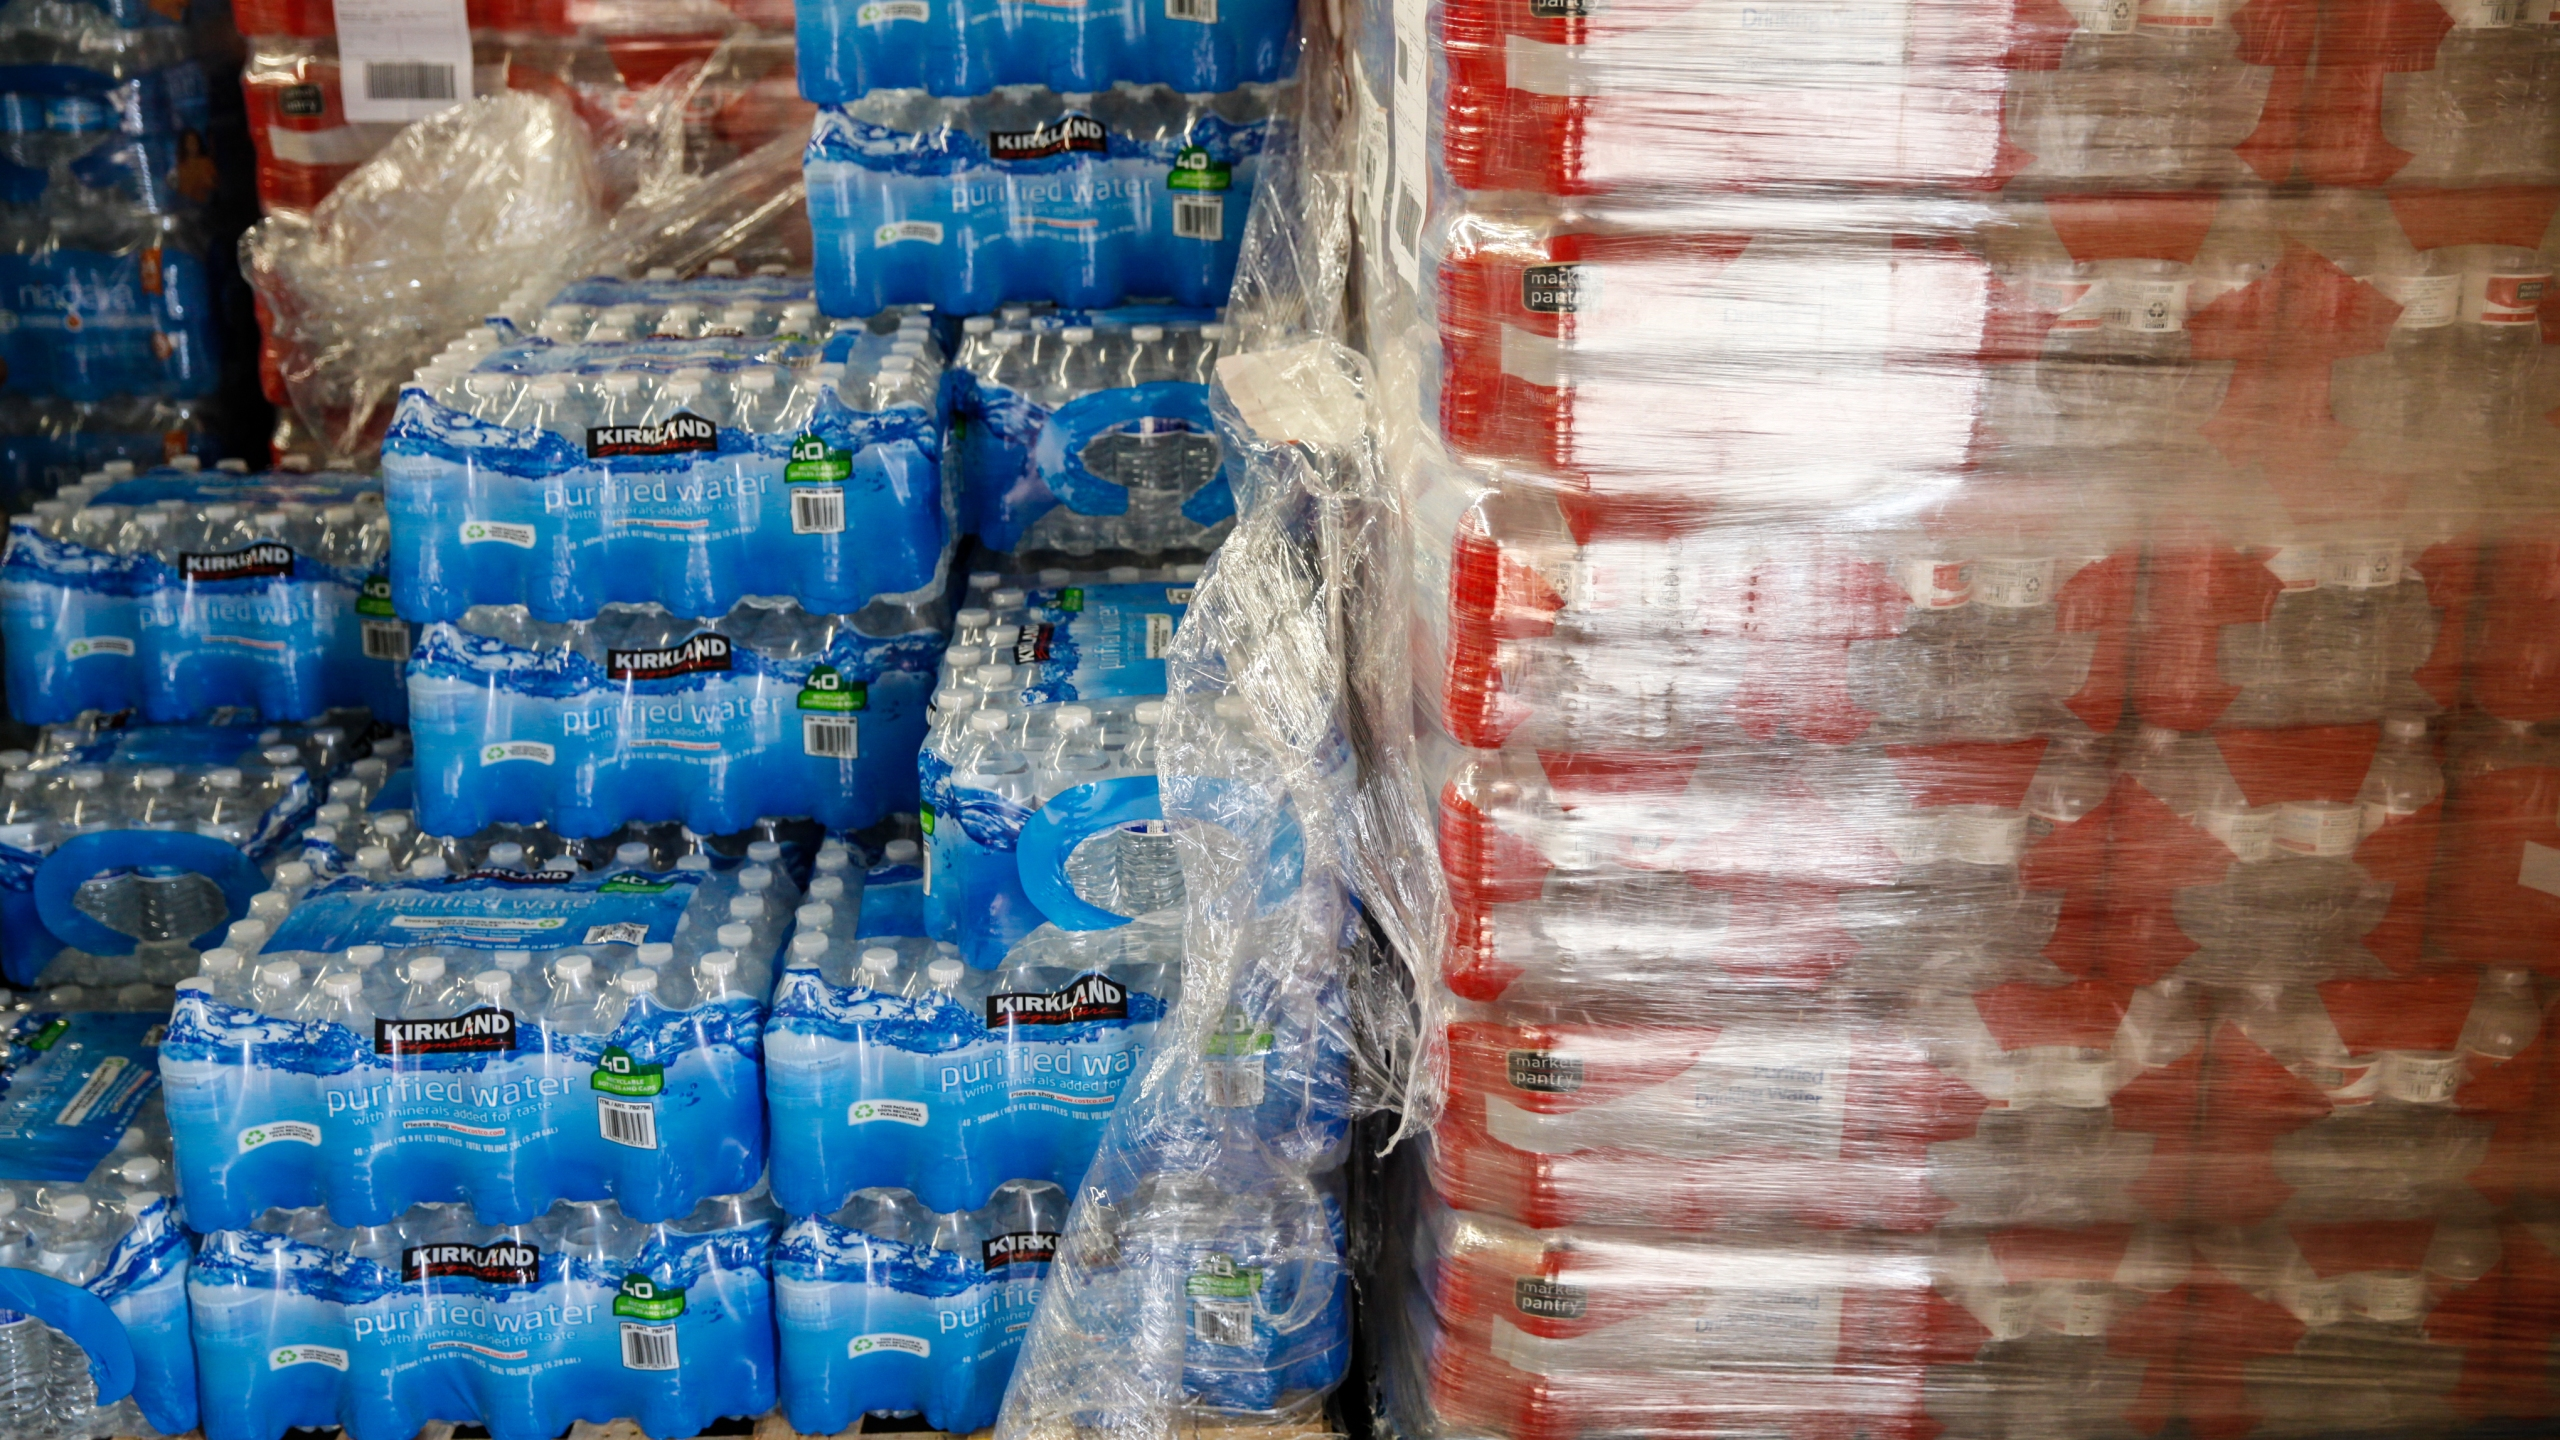 Cases of bottled water are shown at a fire station on February 7, 2016 in Flint, Michigan. (Credit: Sarah Rice/Getty Images)